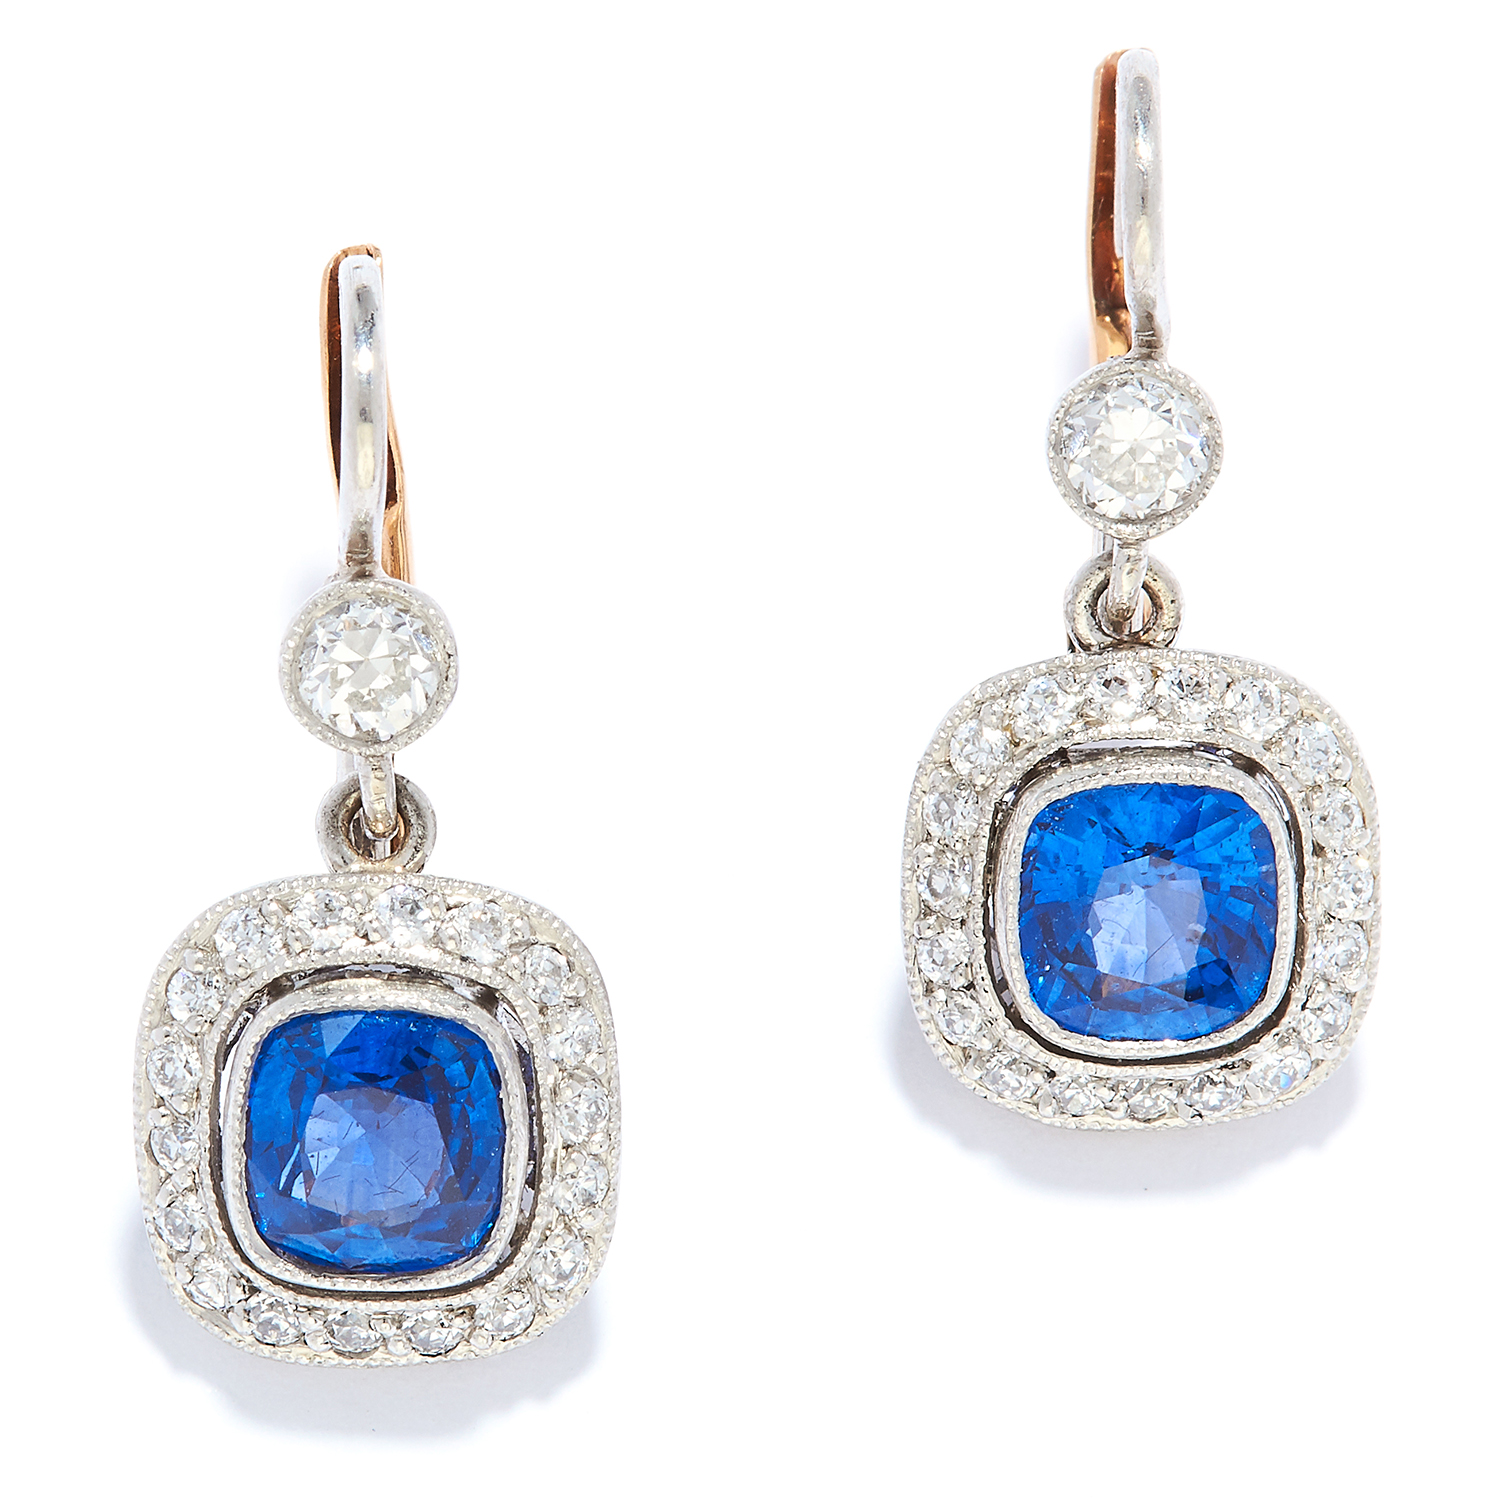 Los 26 - SAPPHIRE AND DIAMOND CLUSTER EARRINGS in 18ct gold or platinum, each set with a cushion cut sapphire